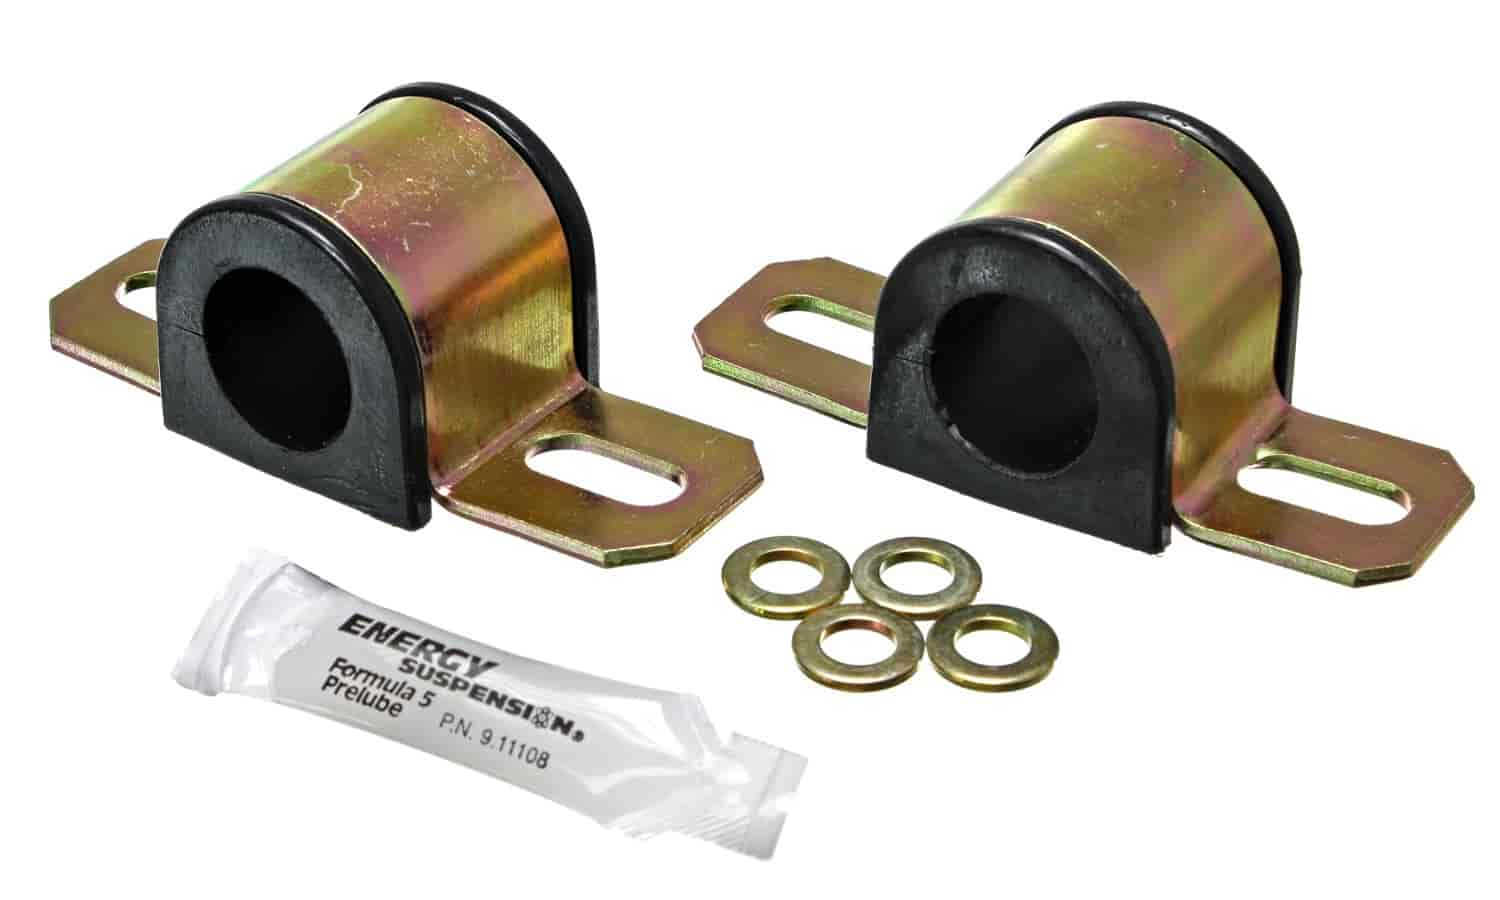 Energy Suspension 9-5114G